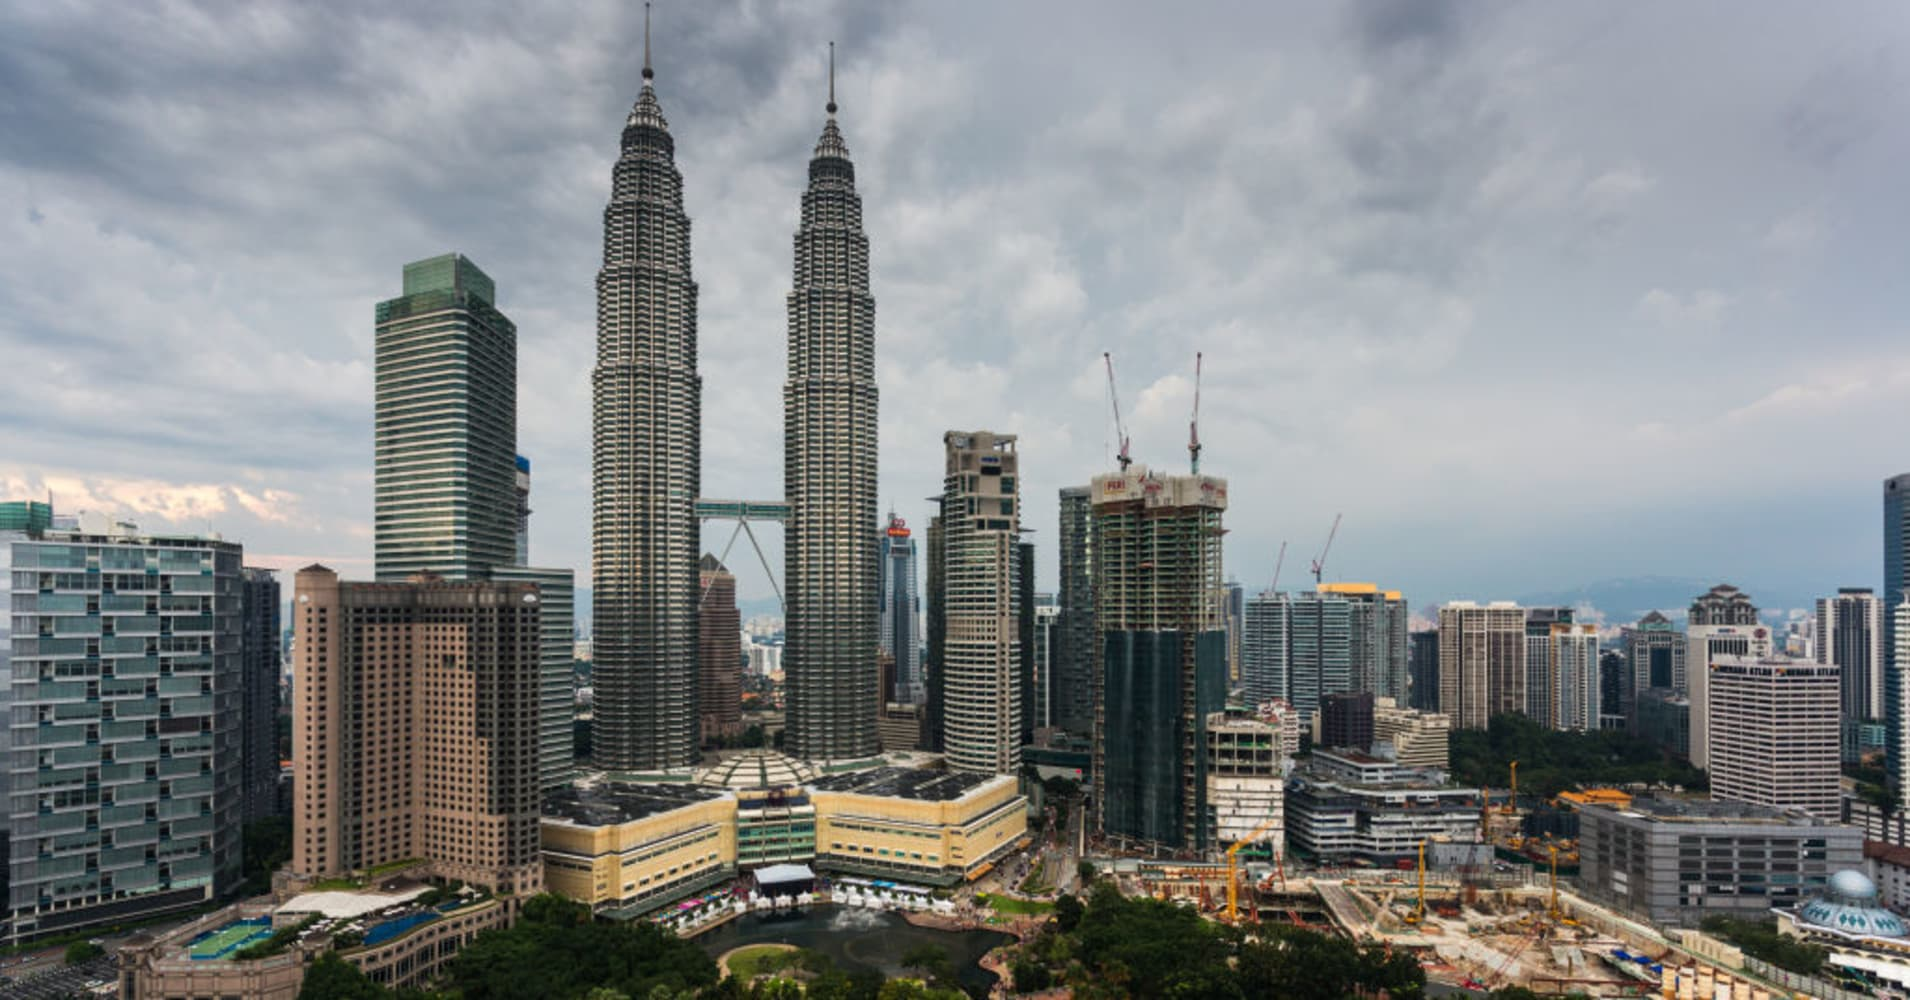 Malaysia sealed $17.57 billion from 408 M&A deals in 2017 — the highest in five years, the latest Duff & Phelps's Transaction Trail report showed.